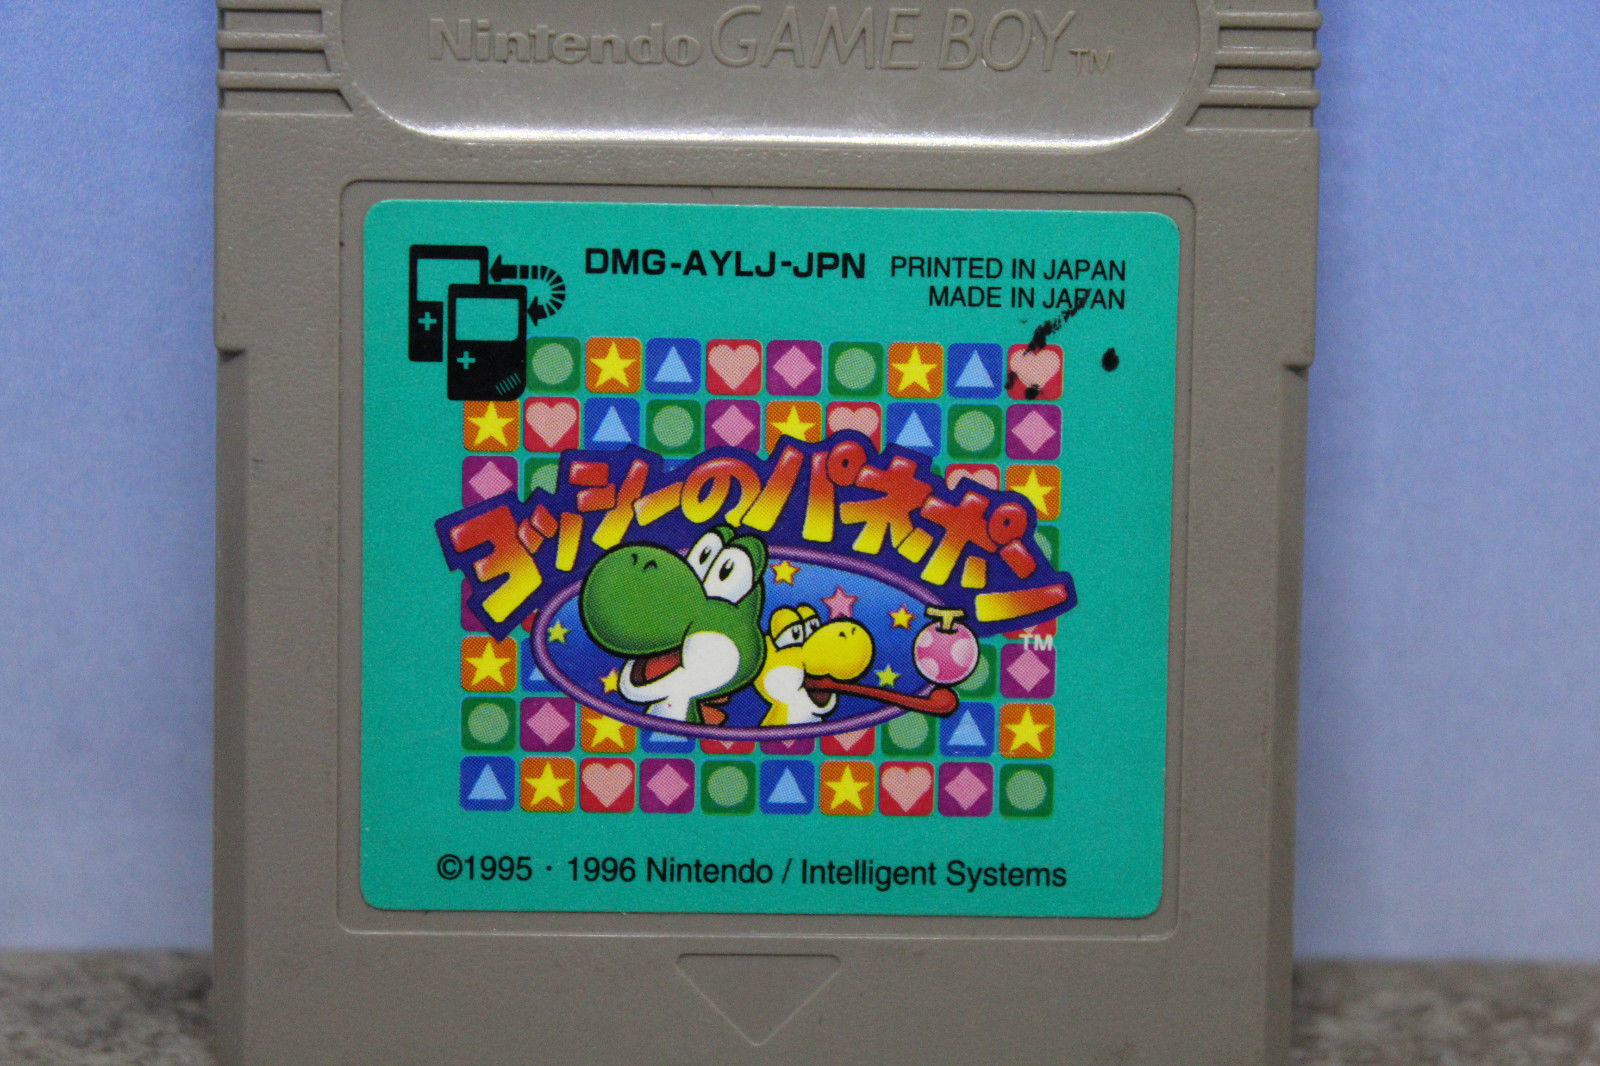 Yoshi Panepon Nintendo Gameboy Japanese Import Cartridge Only DMG-AYLJ-JPN 1995 image 2